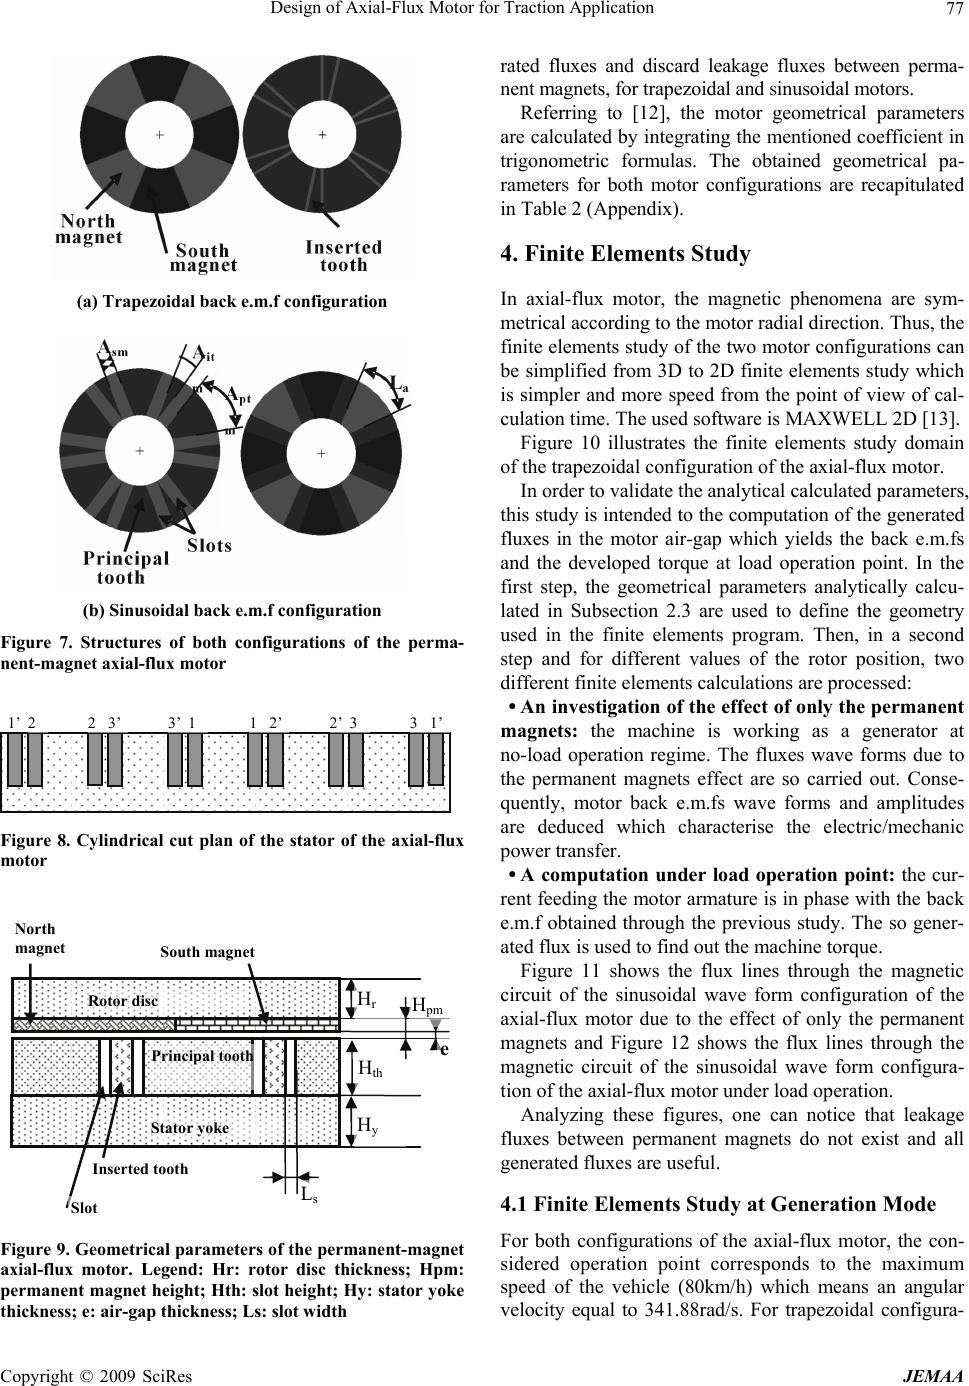 Design of Axial-Flux Motor for Traction Application